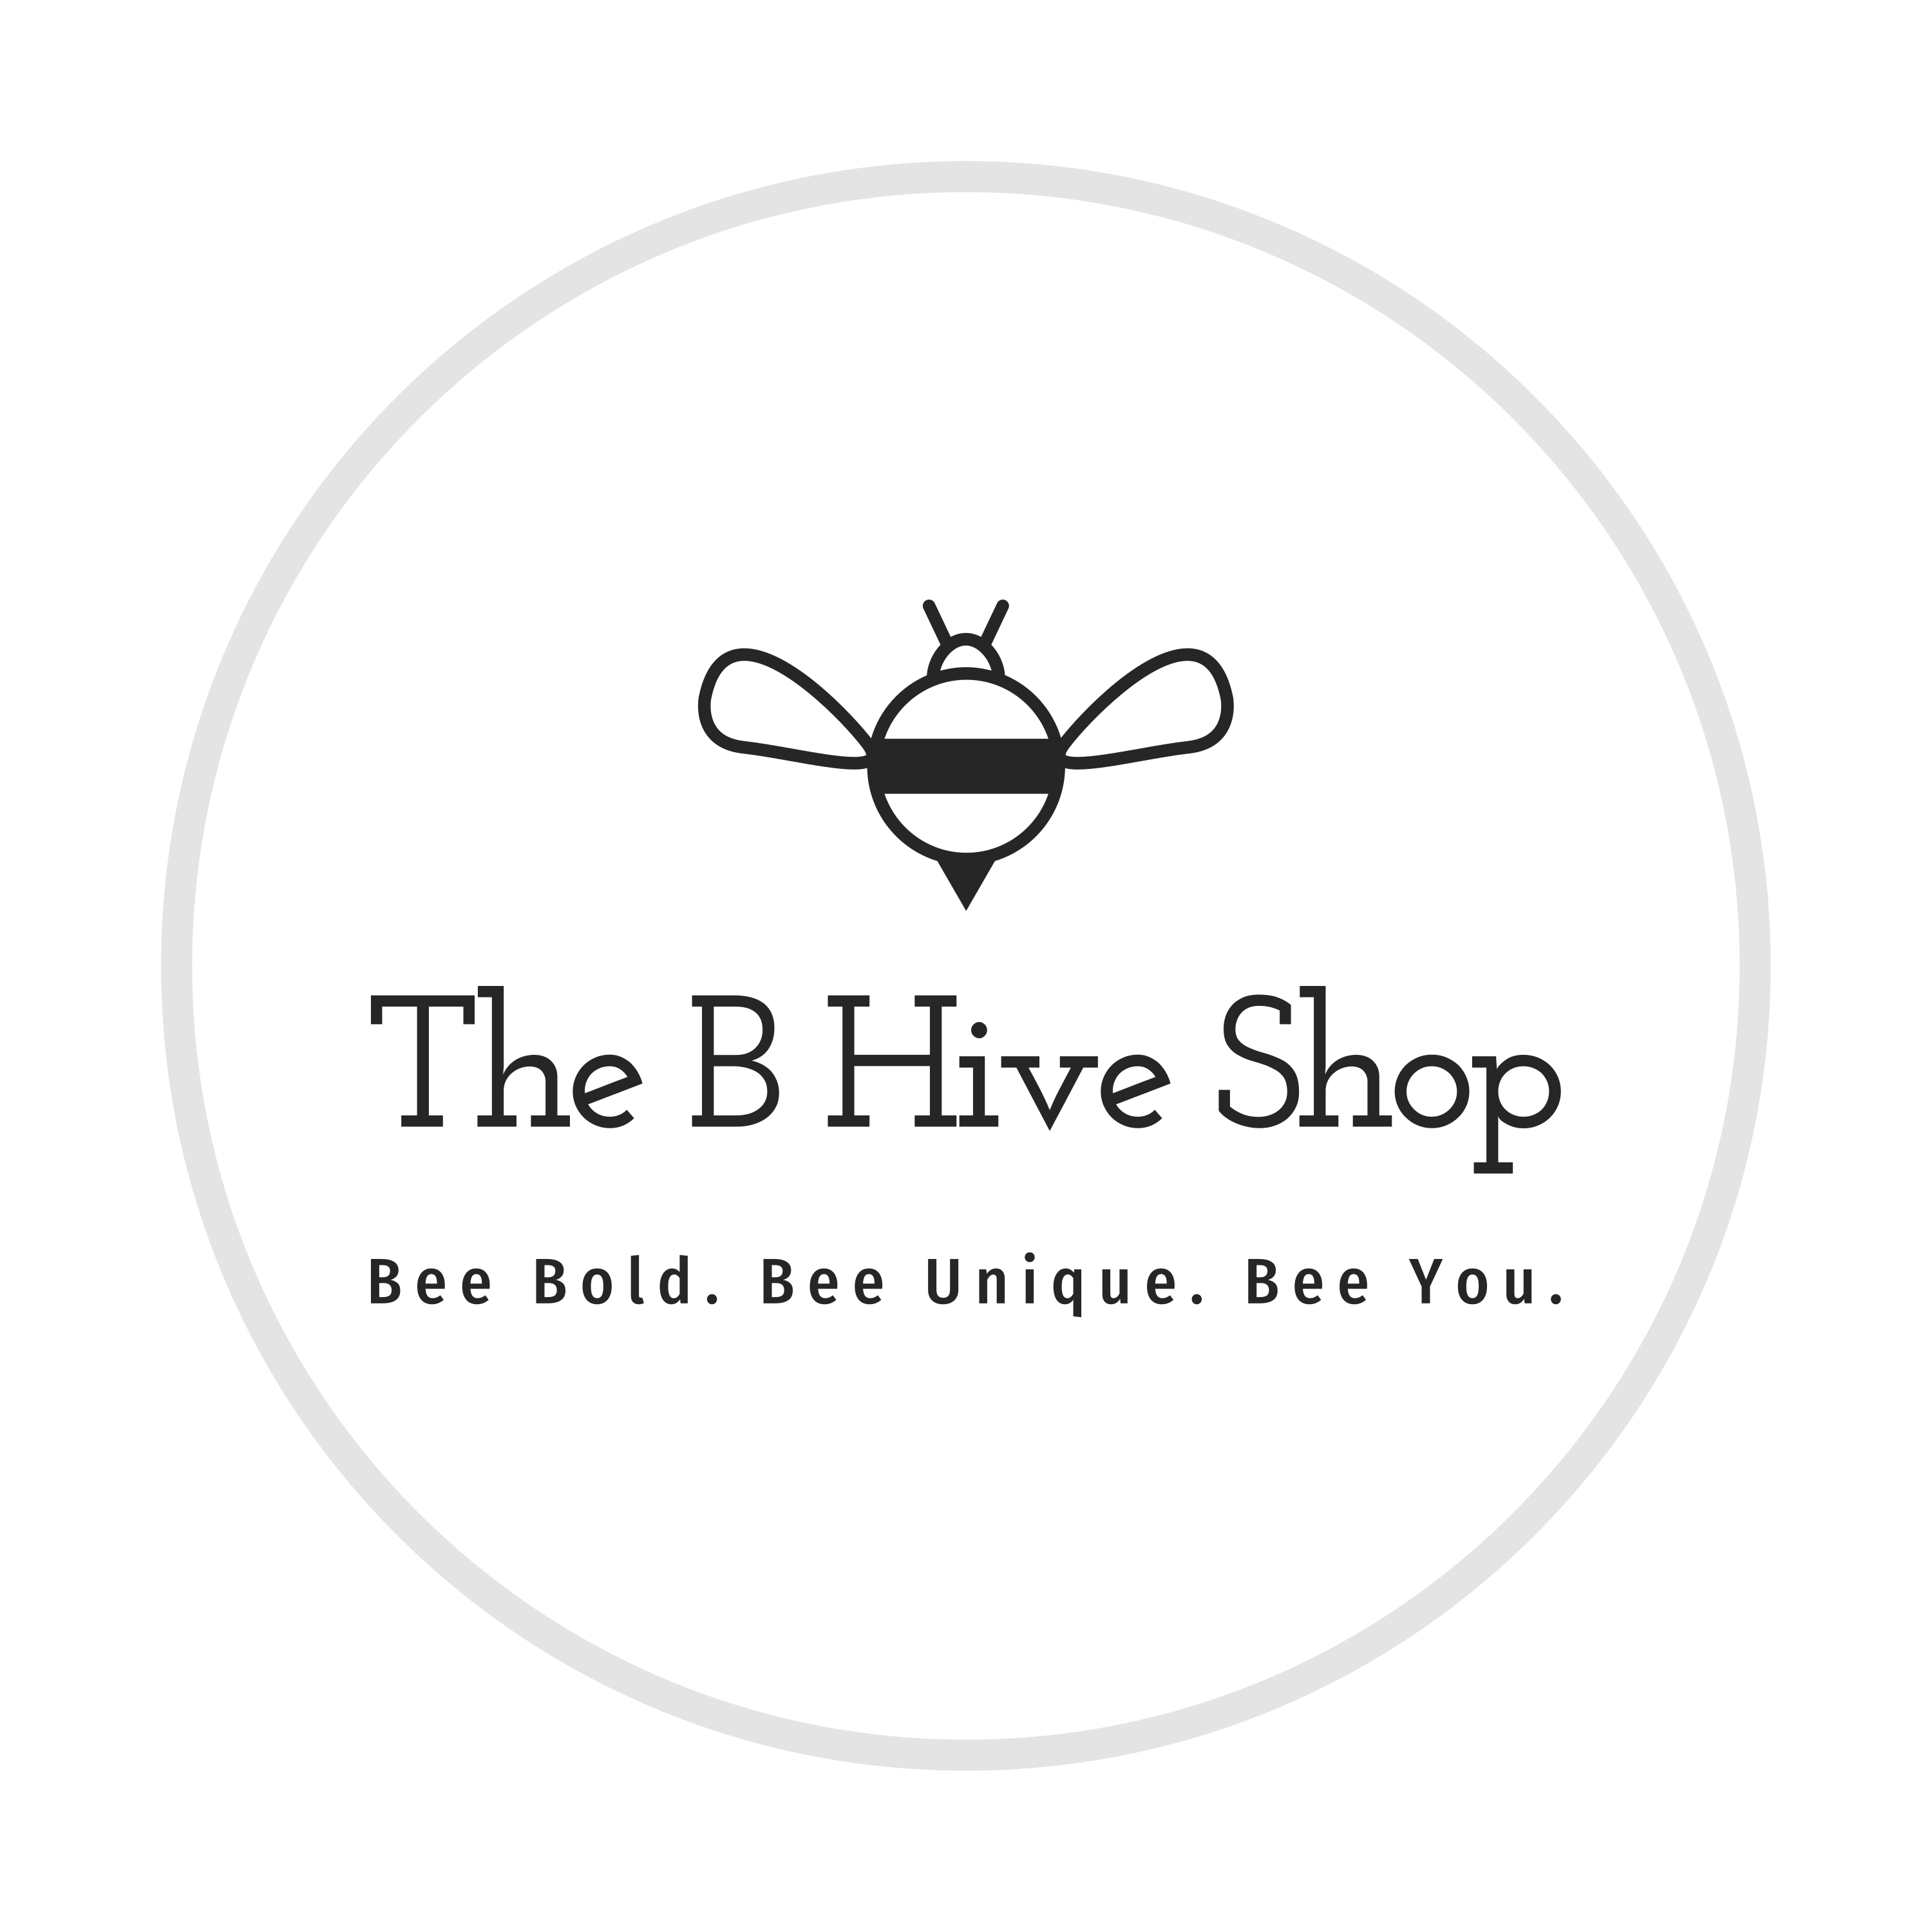 The B Hive Shop